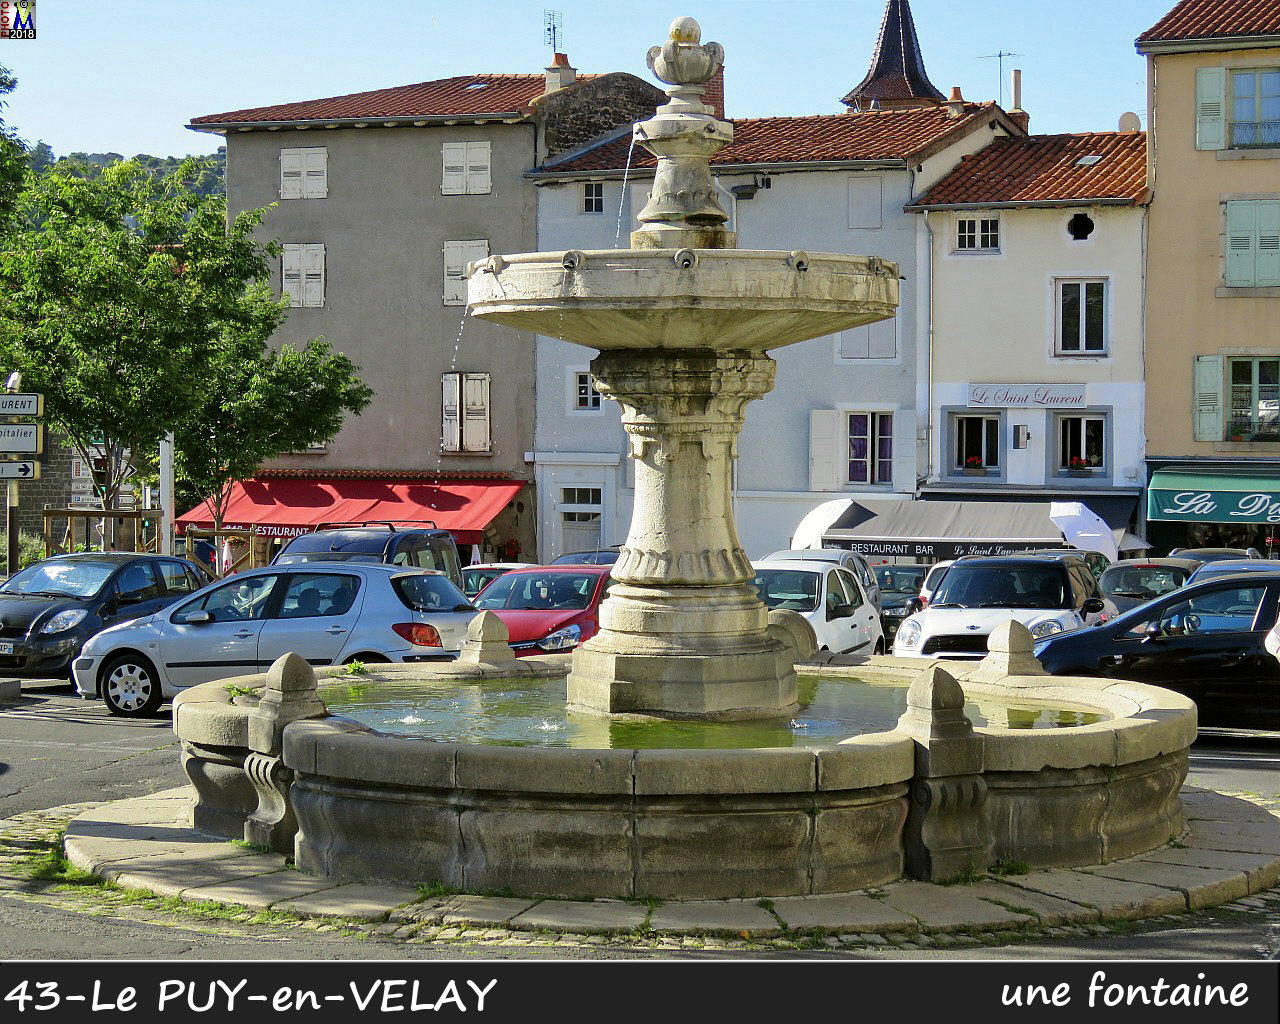 43PUY-EN-VELAY_fontaine_170.jpg